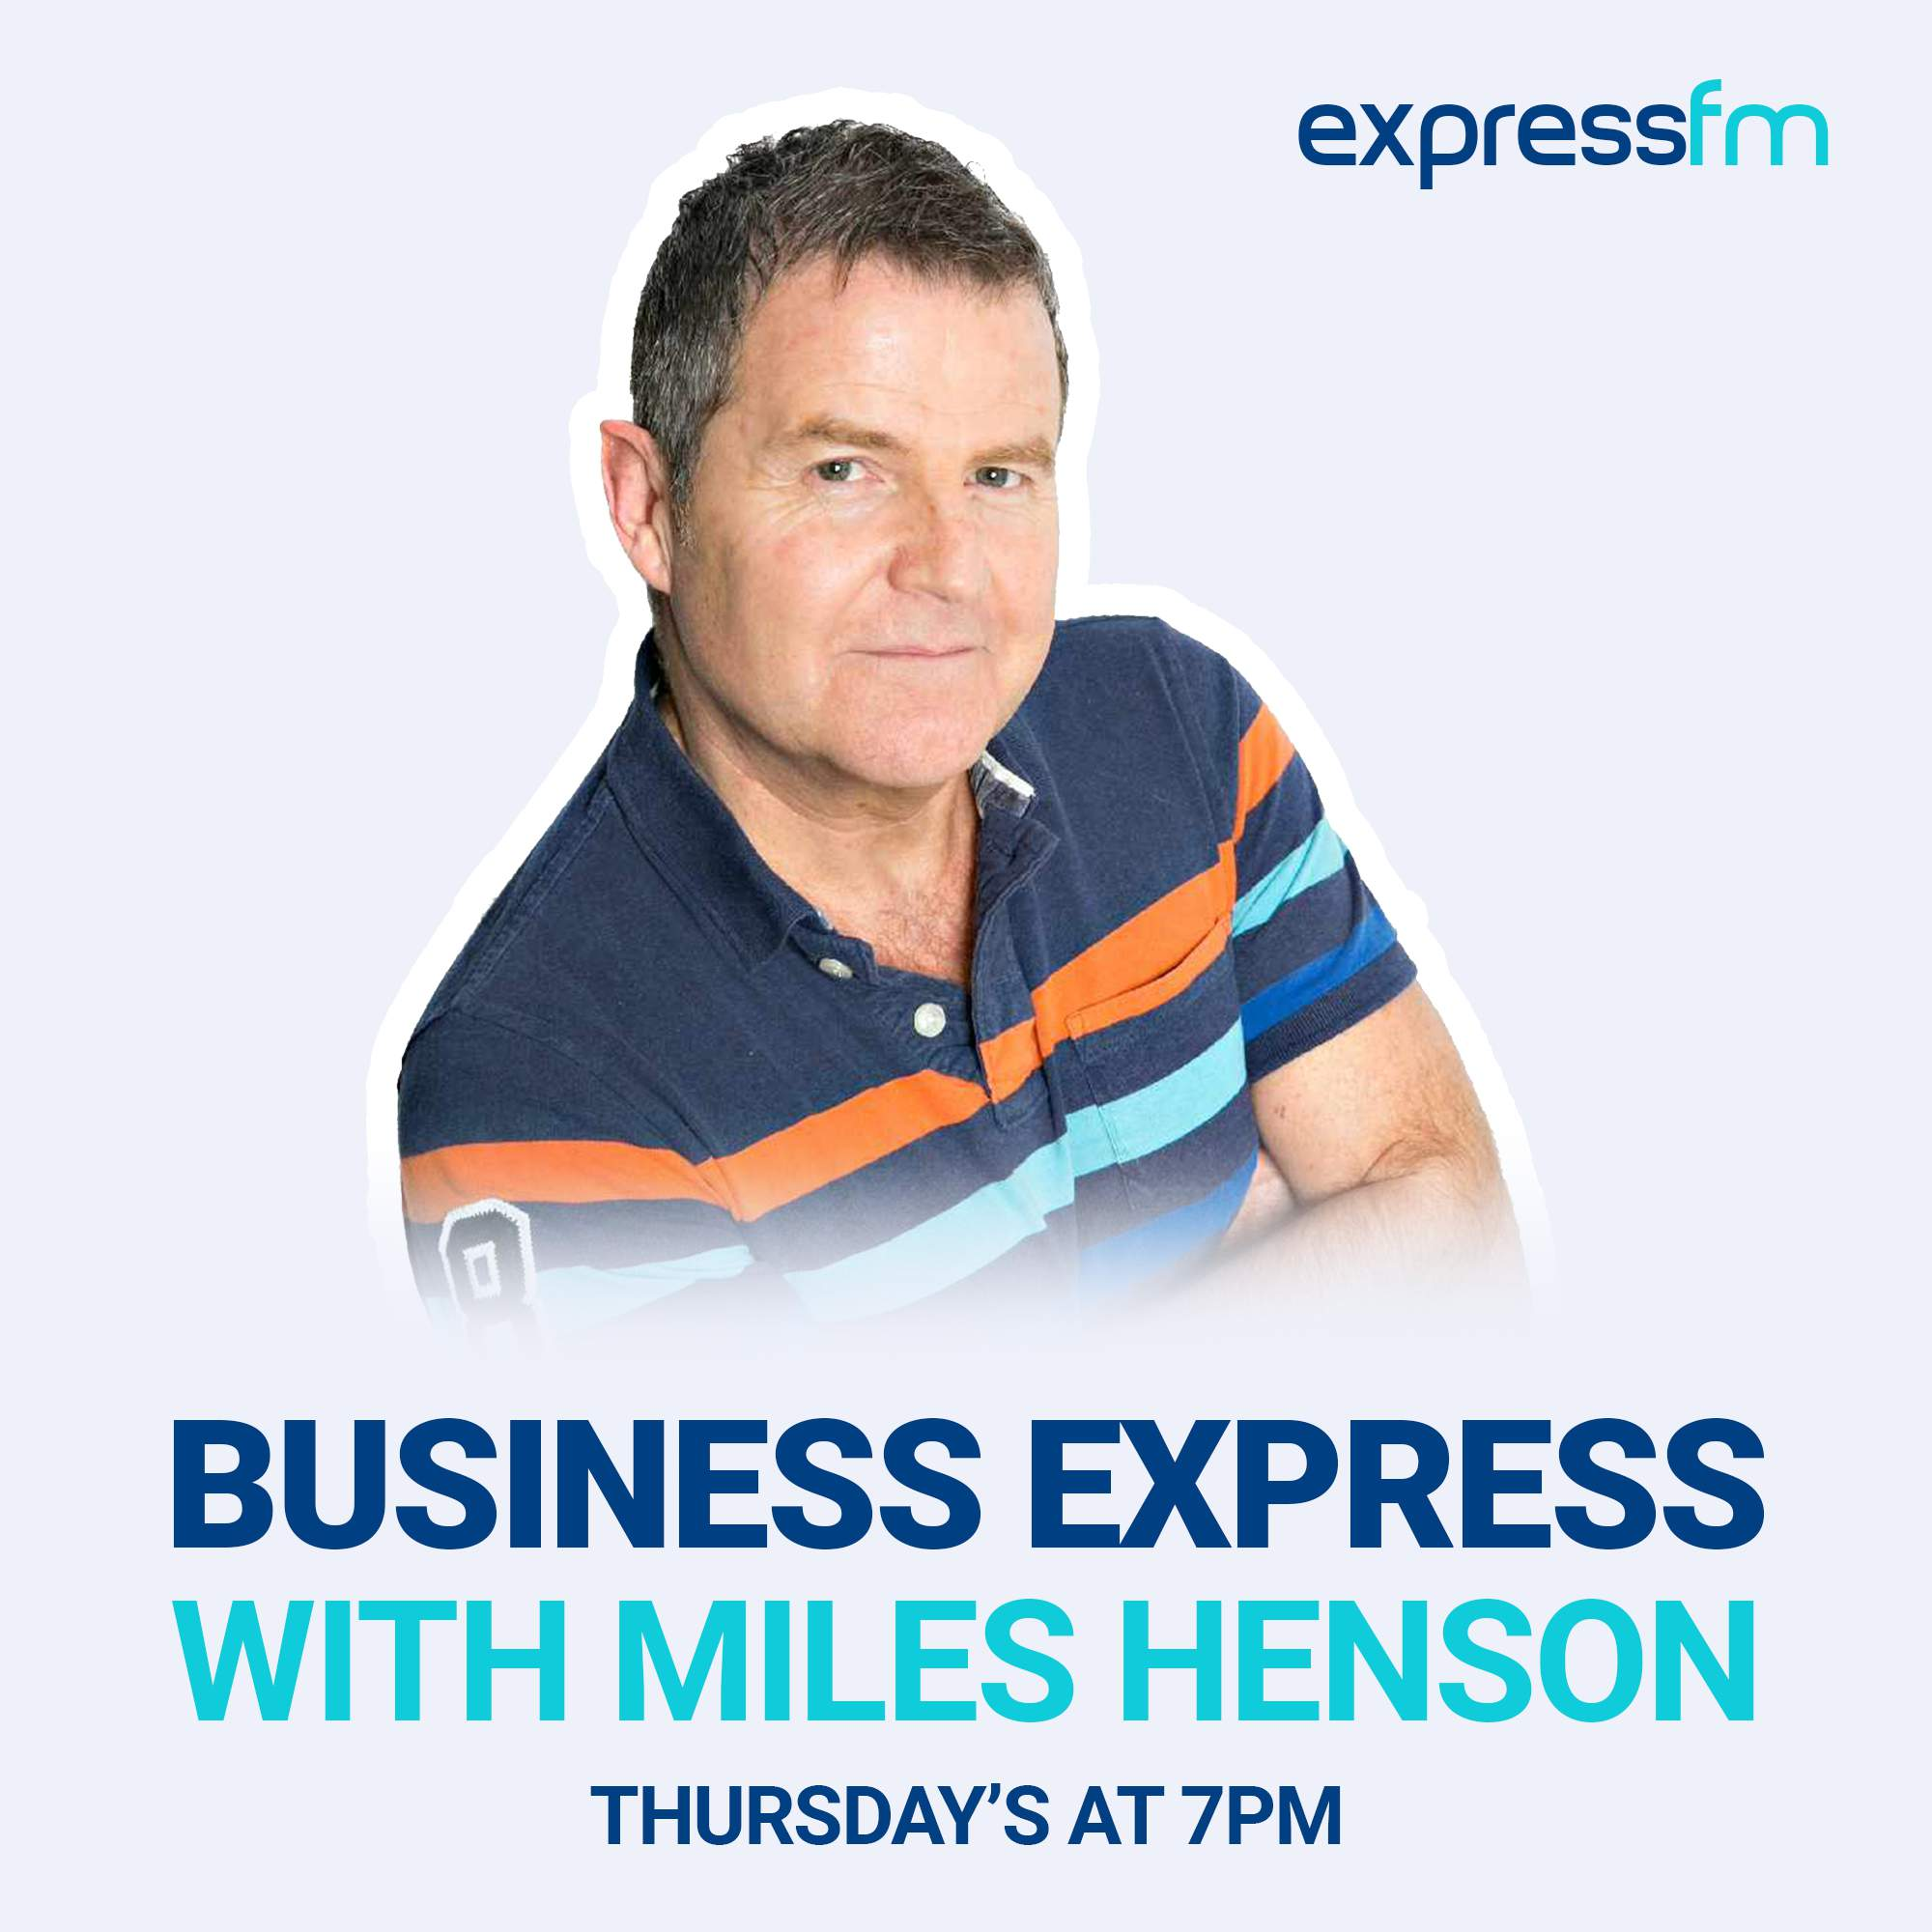 Business Express with Miles Henson